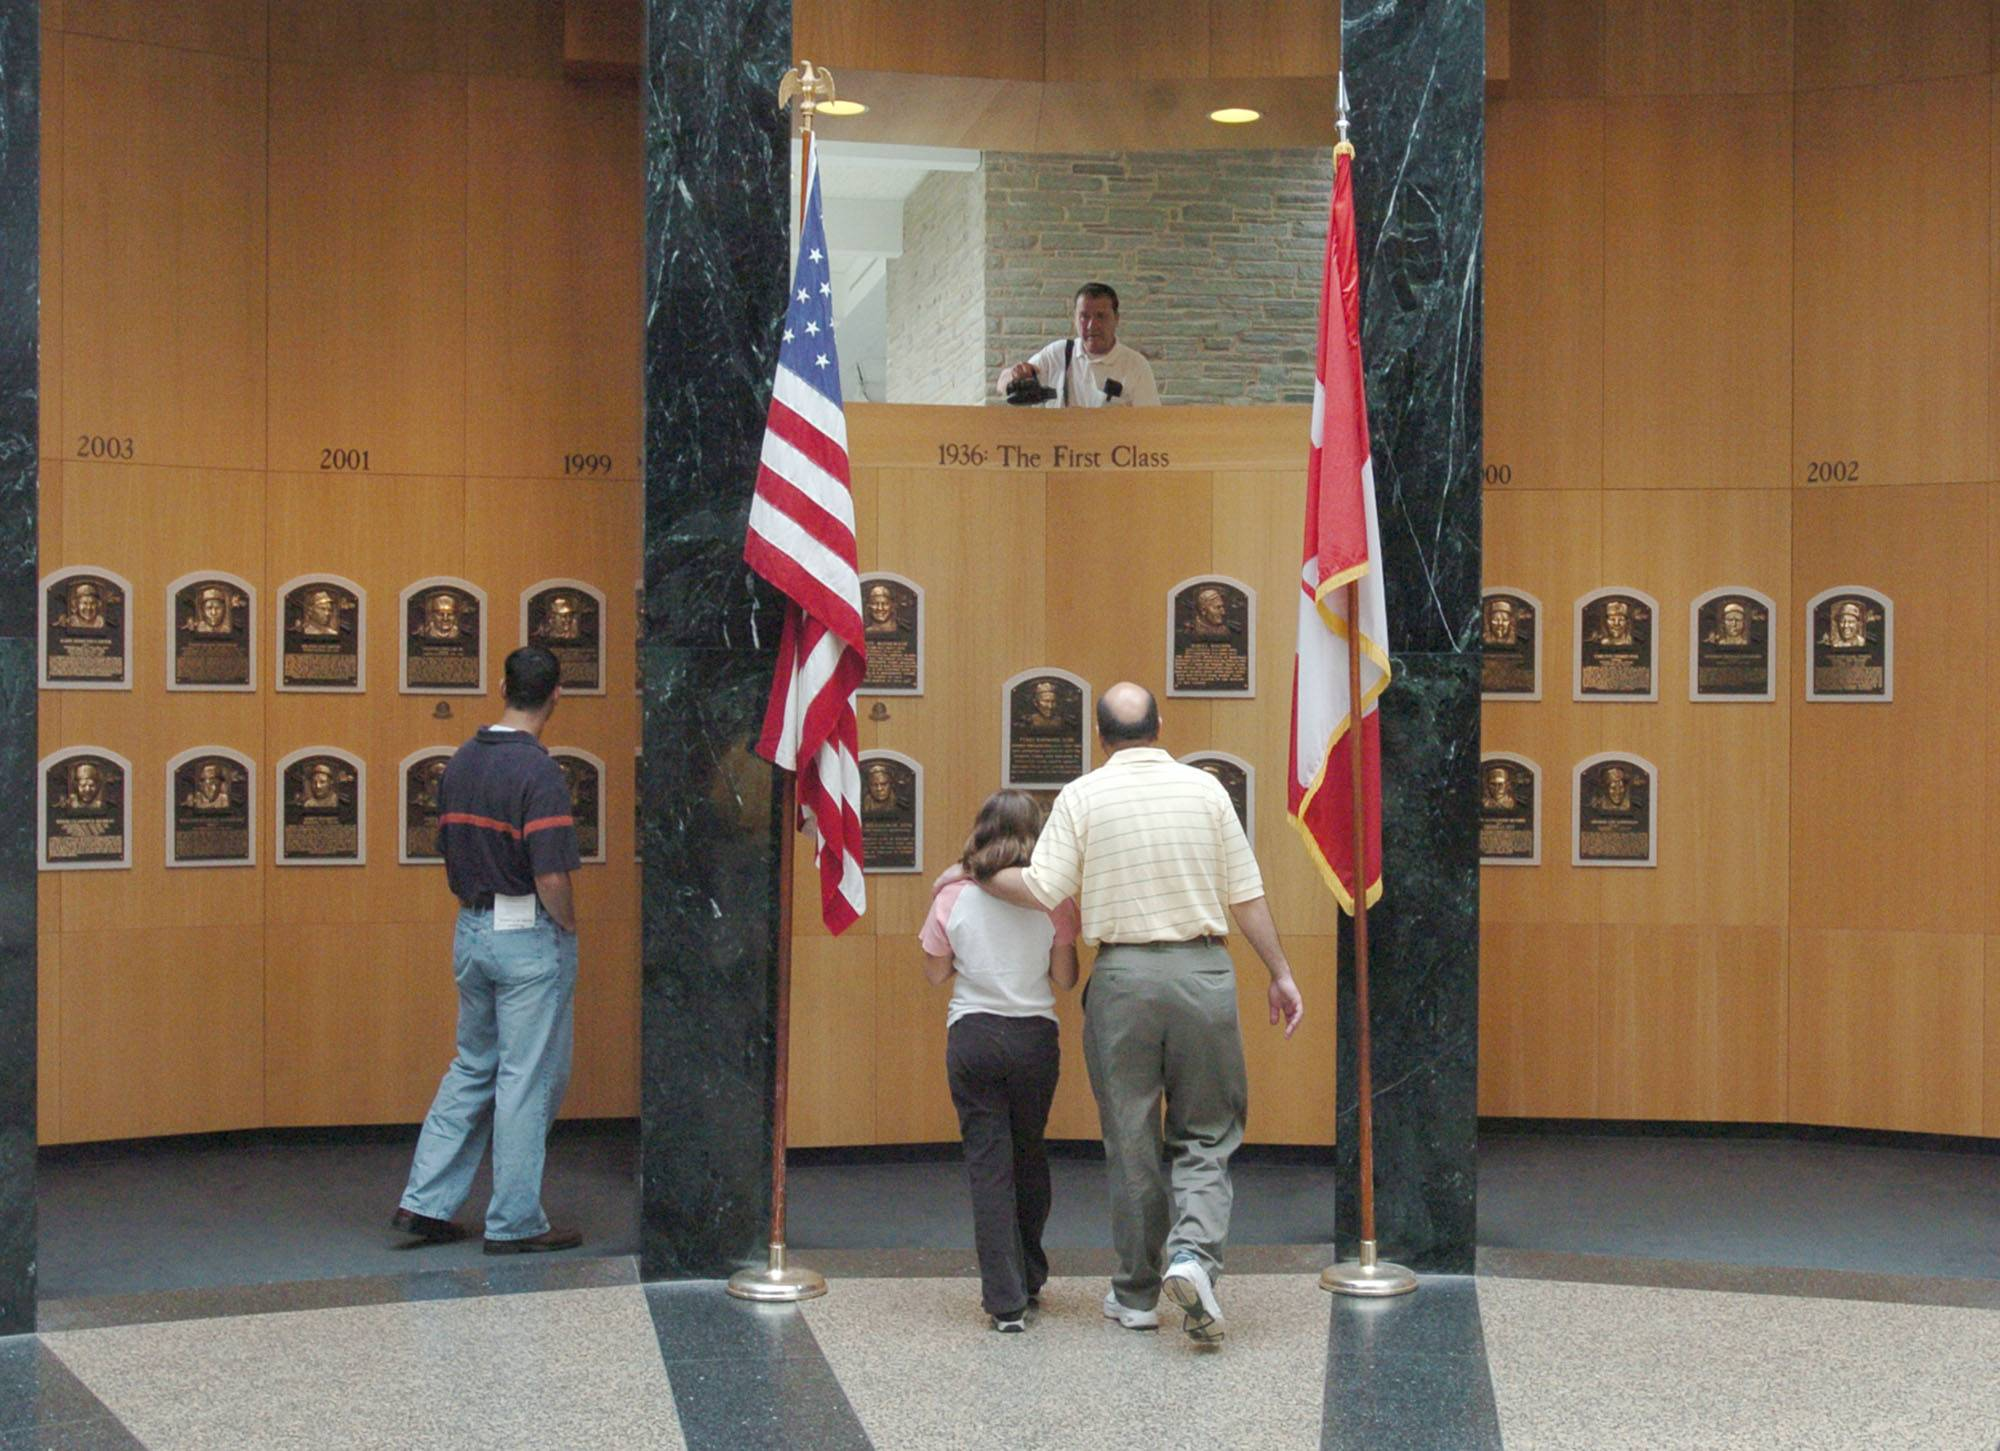 Museum patrons view plaques of recent inductees into the National Baseball Hall of Fame and Museum in Cooperstown, N.Y.